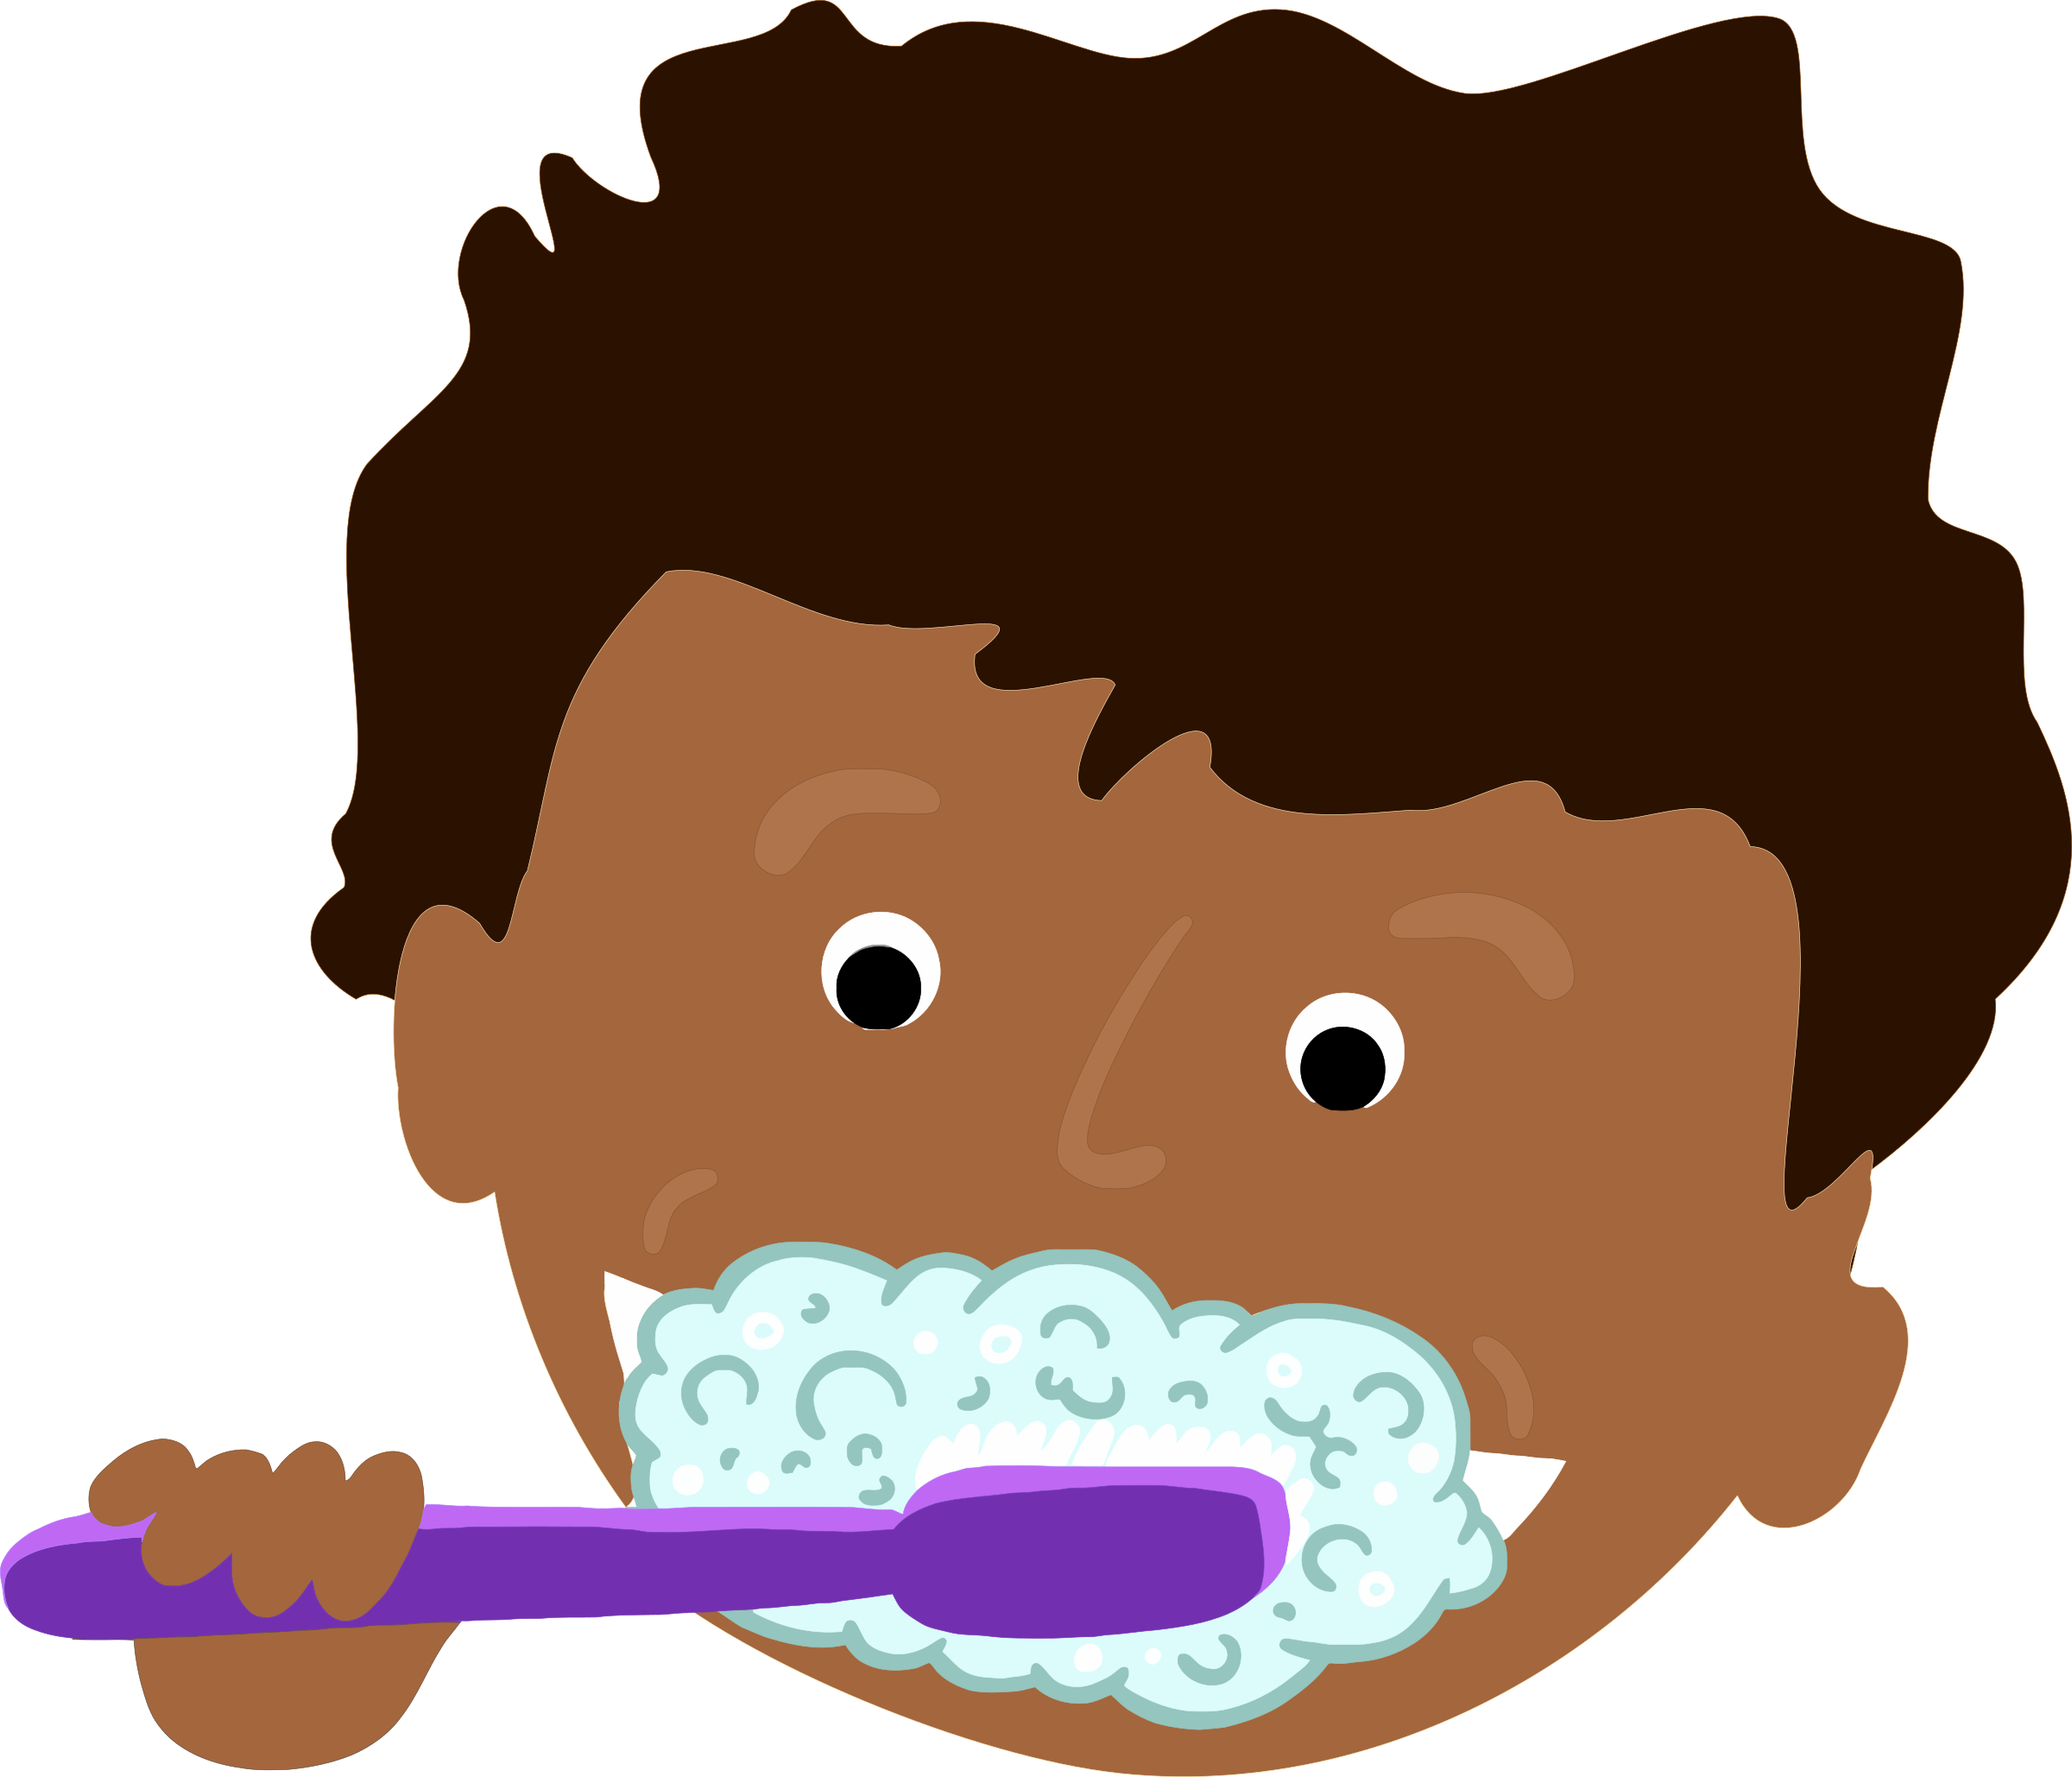 image library download Kids brushing teeth clipart. African kid big image